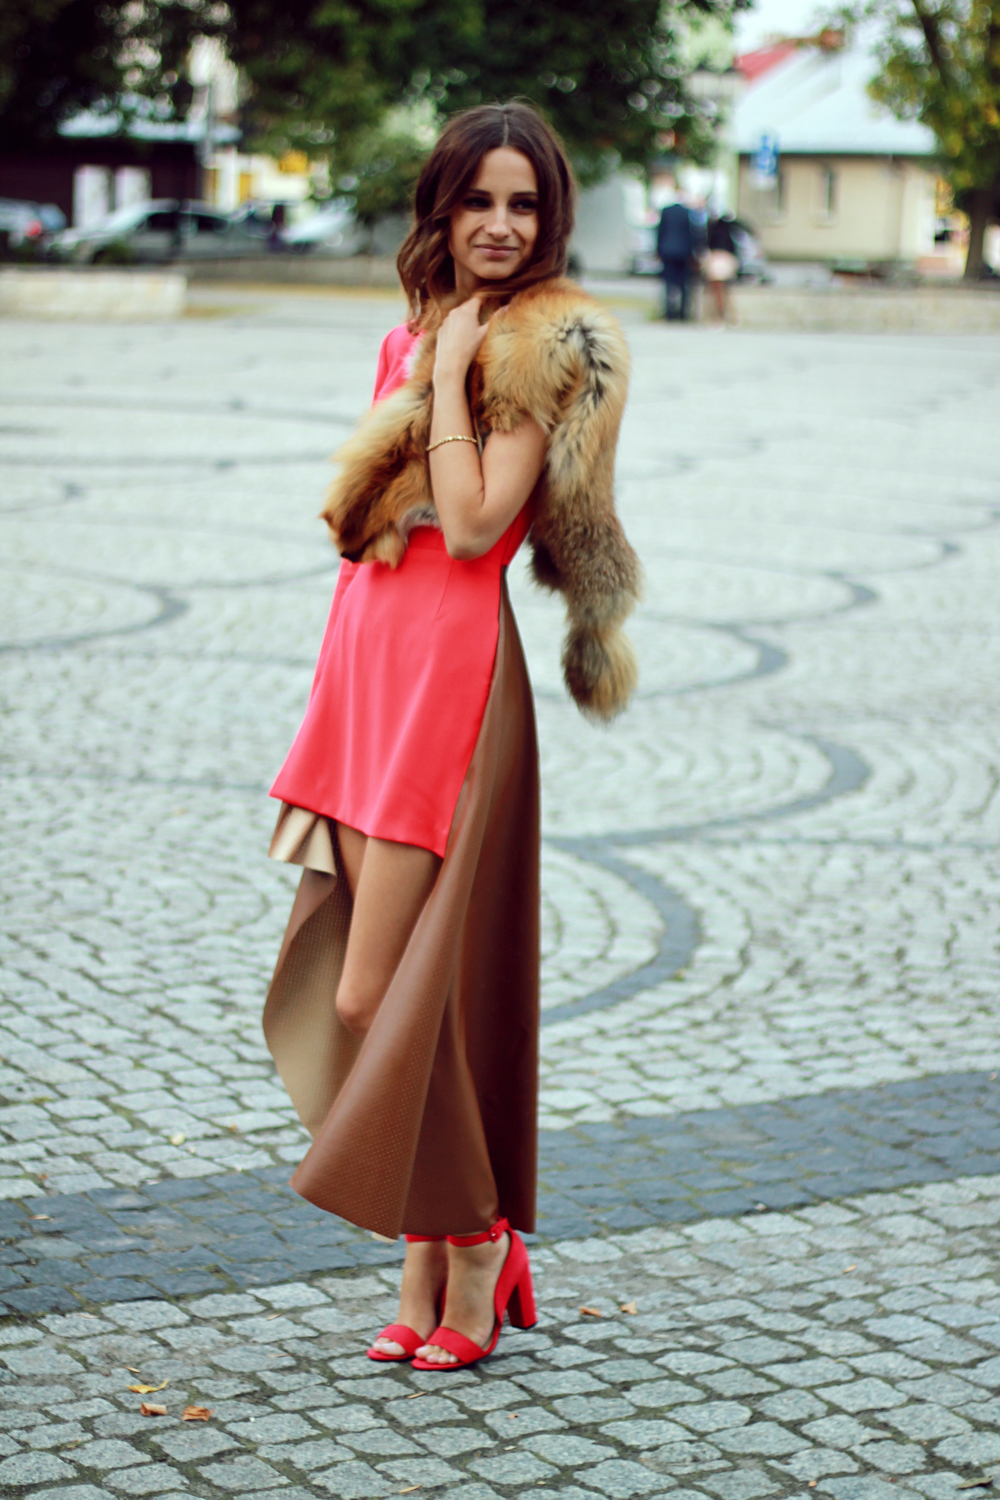 red dress original chic outfit clothes girl vogue lookbook ootd